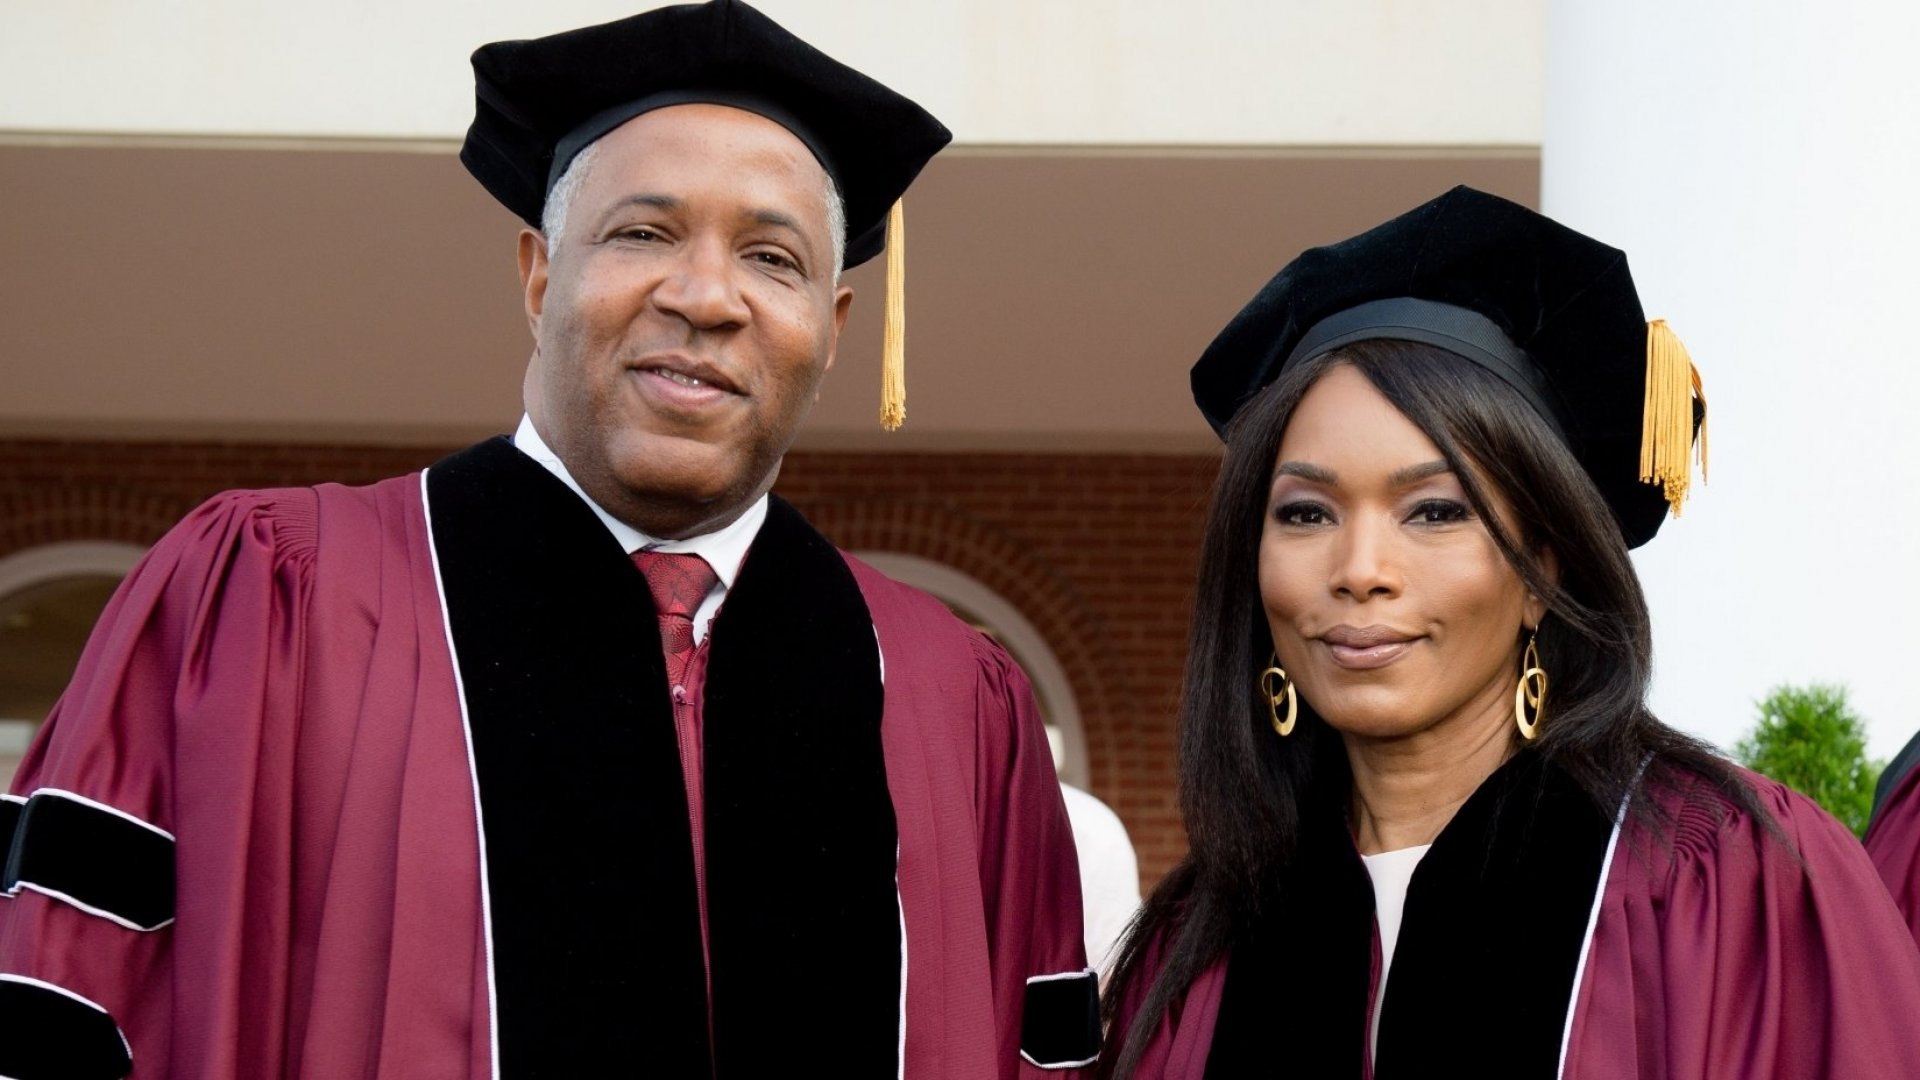 Billionaire Commencement Speaker Stuns Morehouse Students by Paying Their Student Loans